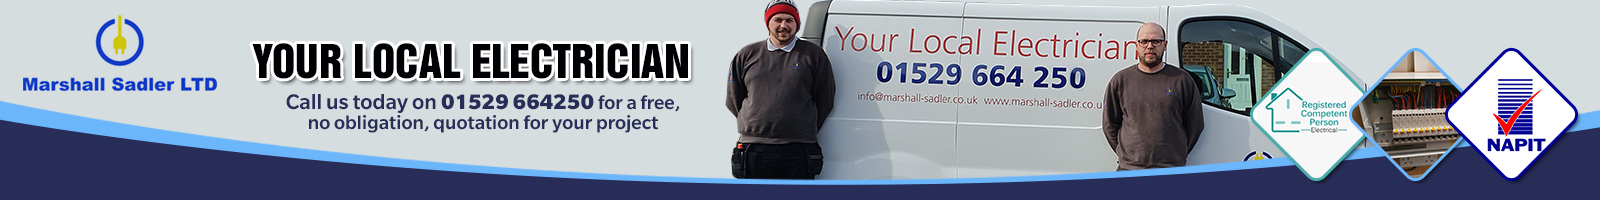 Marshall-Sadler Ltd - Your local, reliable and trustworthy electricians in Sleaford.